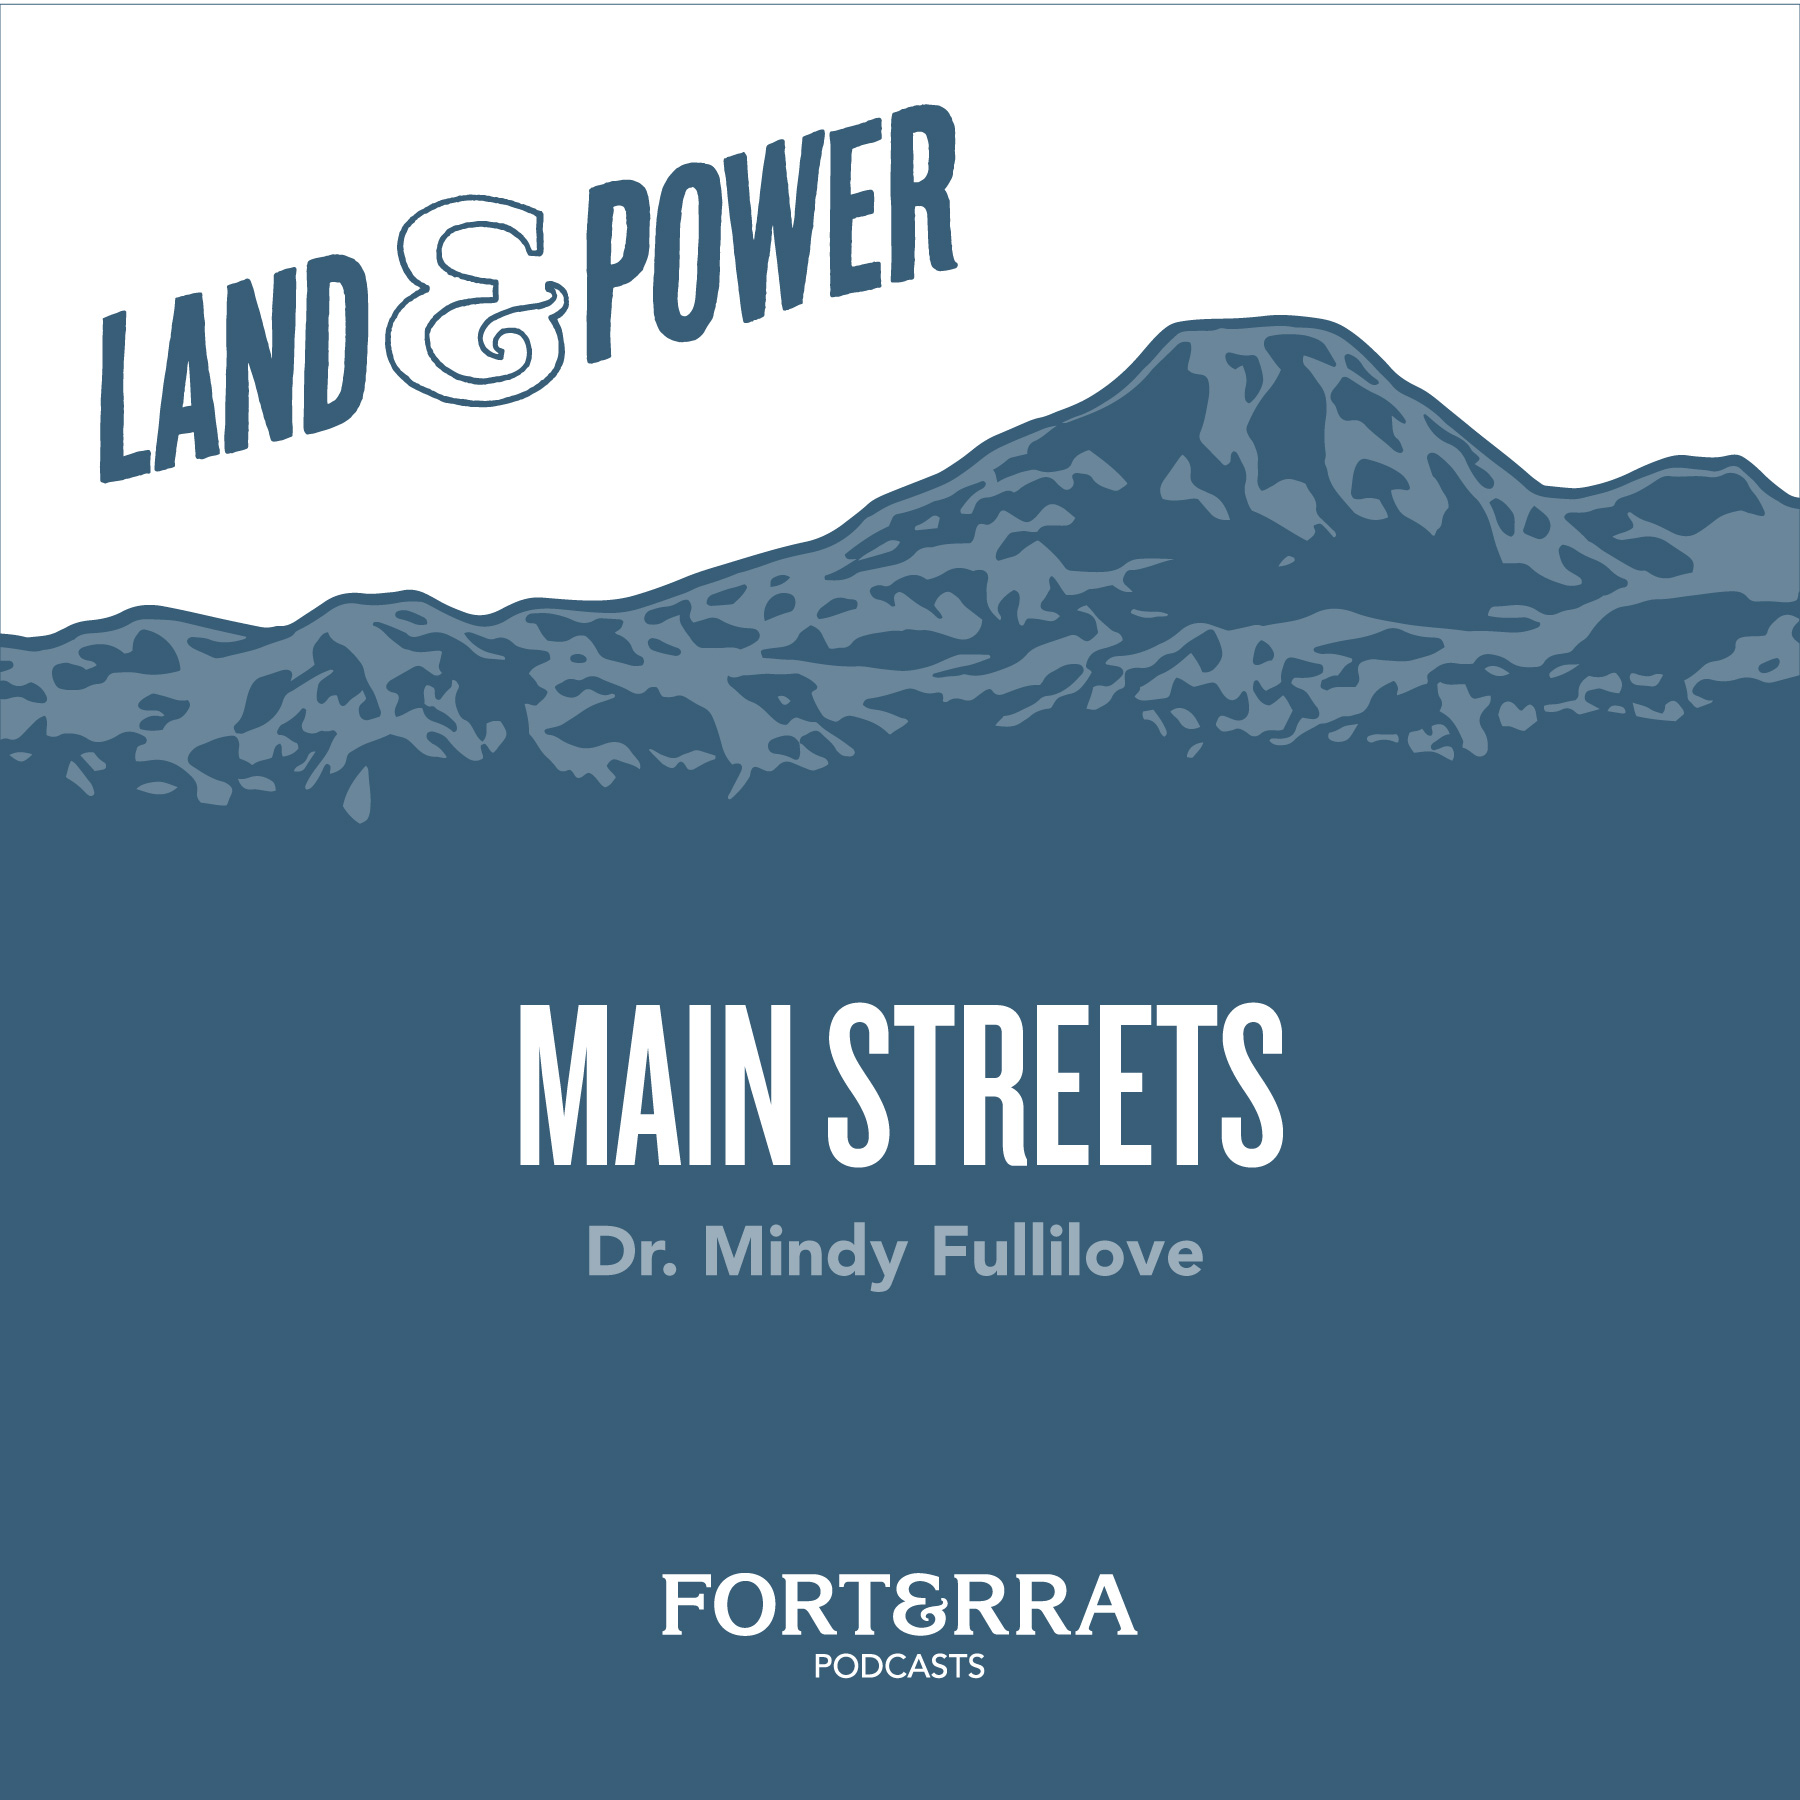 Land & Power: Main streets with Dr. Mindy Fullilove